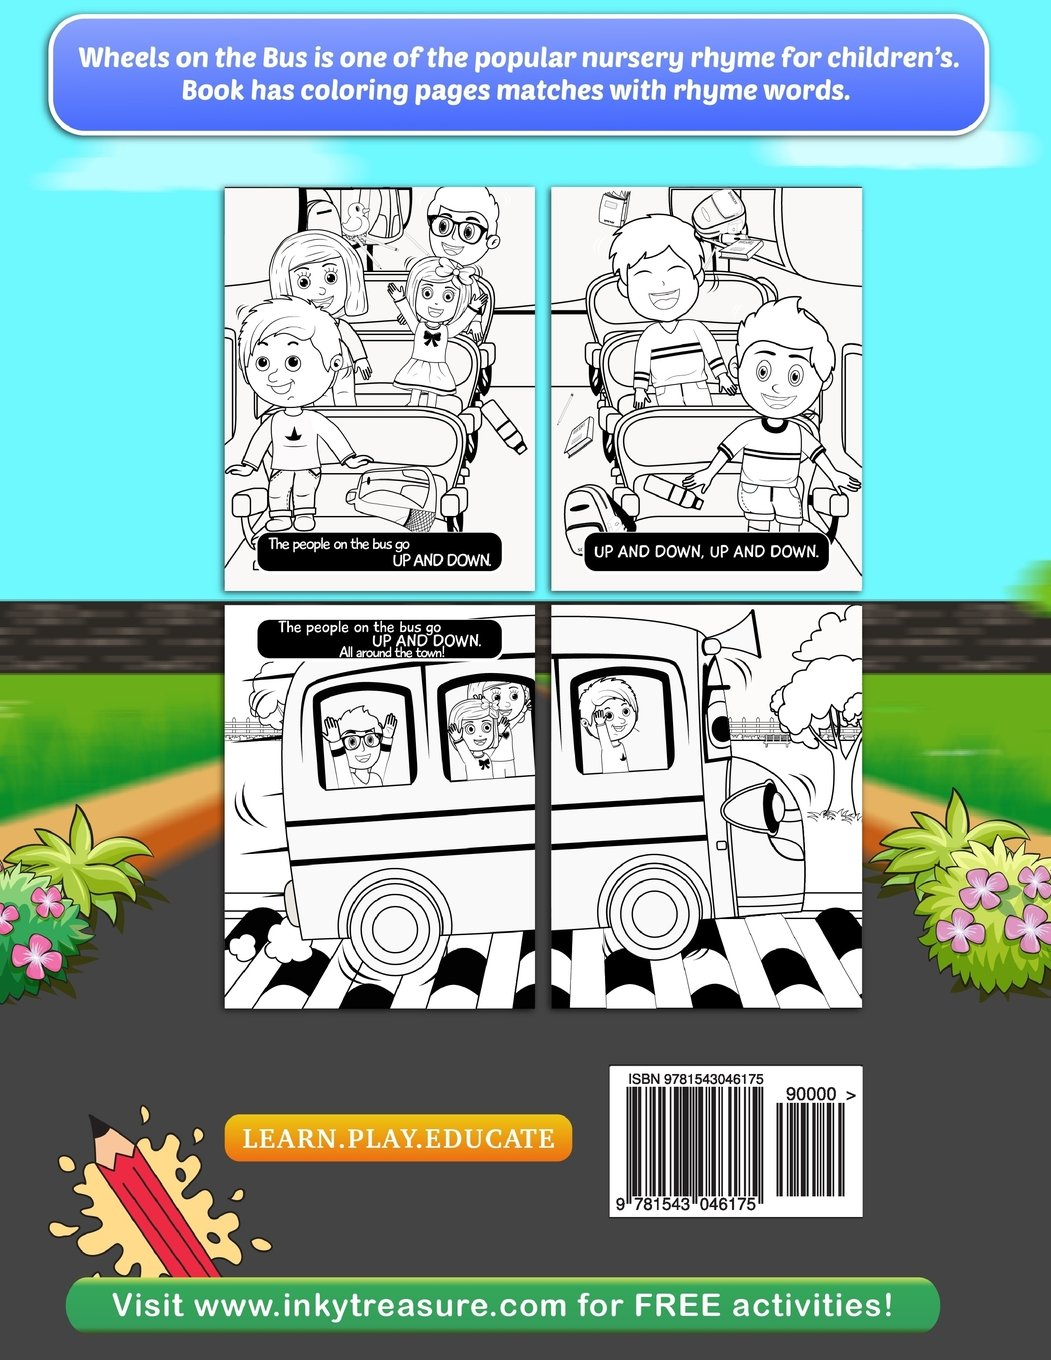 Wheels On The Bus Nursery Rhyme Story Coloring Book For Childrens Sachin Sachdeva 9781543046175 Amazon Books